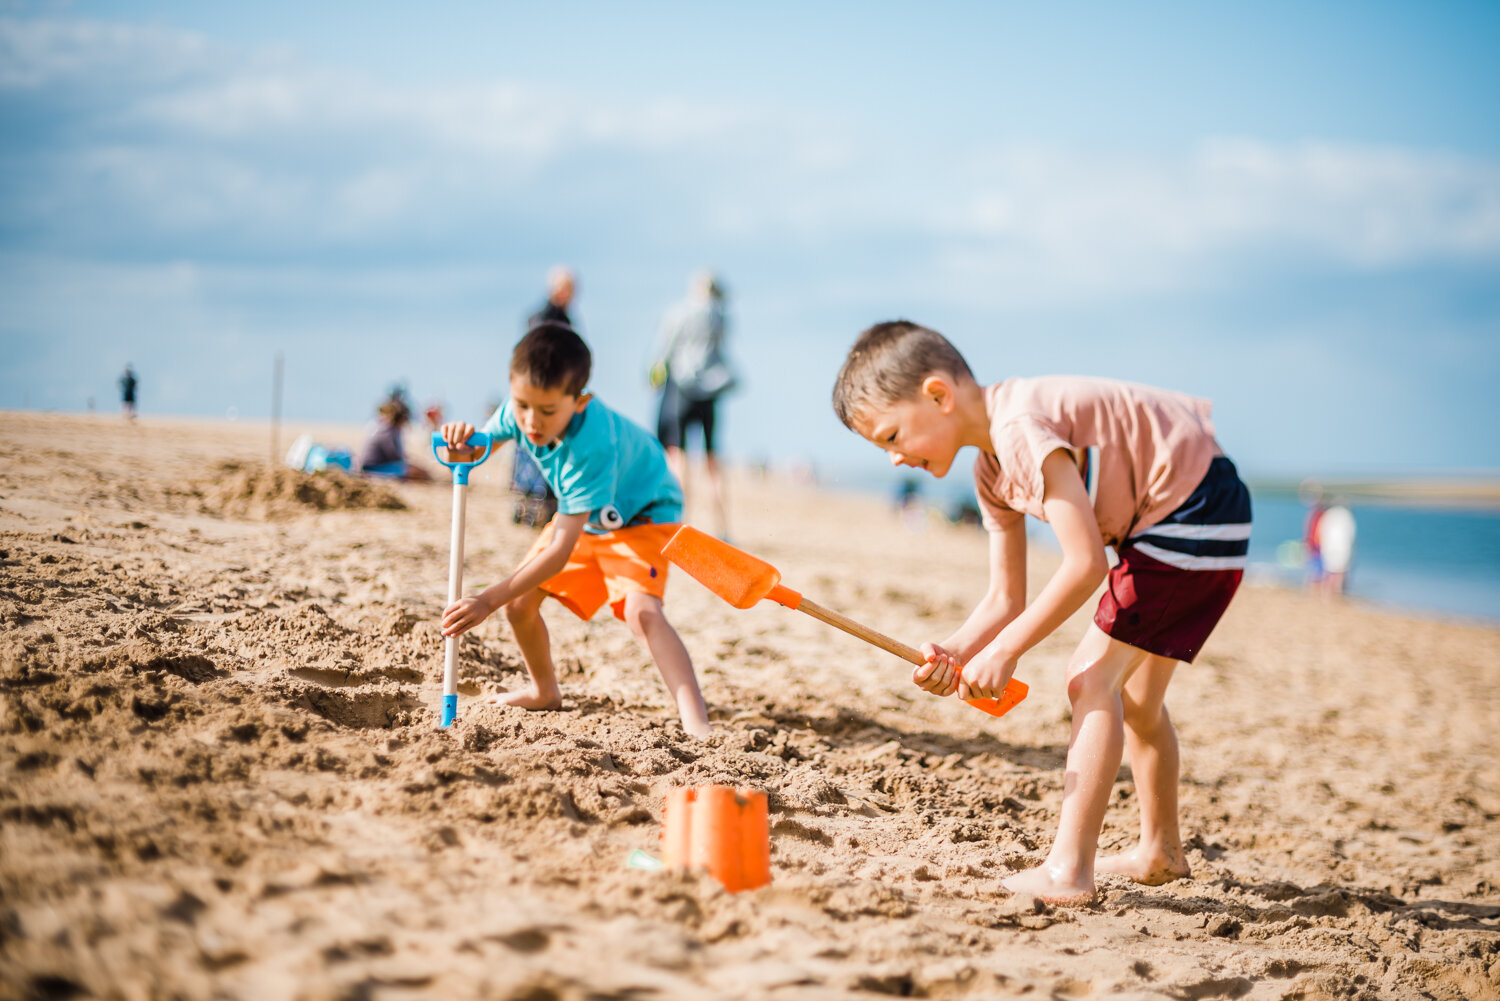 Bucket and spade, sandcastle building, family photography on the beach at Wells-next-the-Sea, Norfolk.